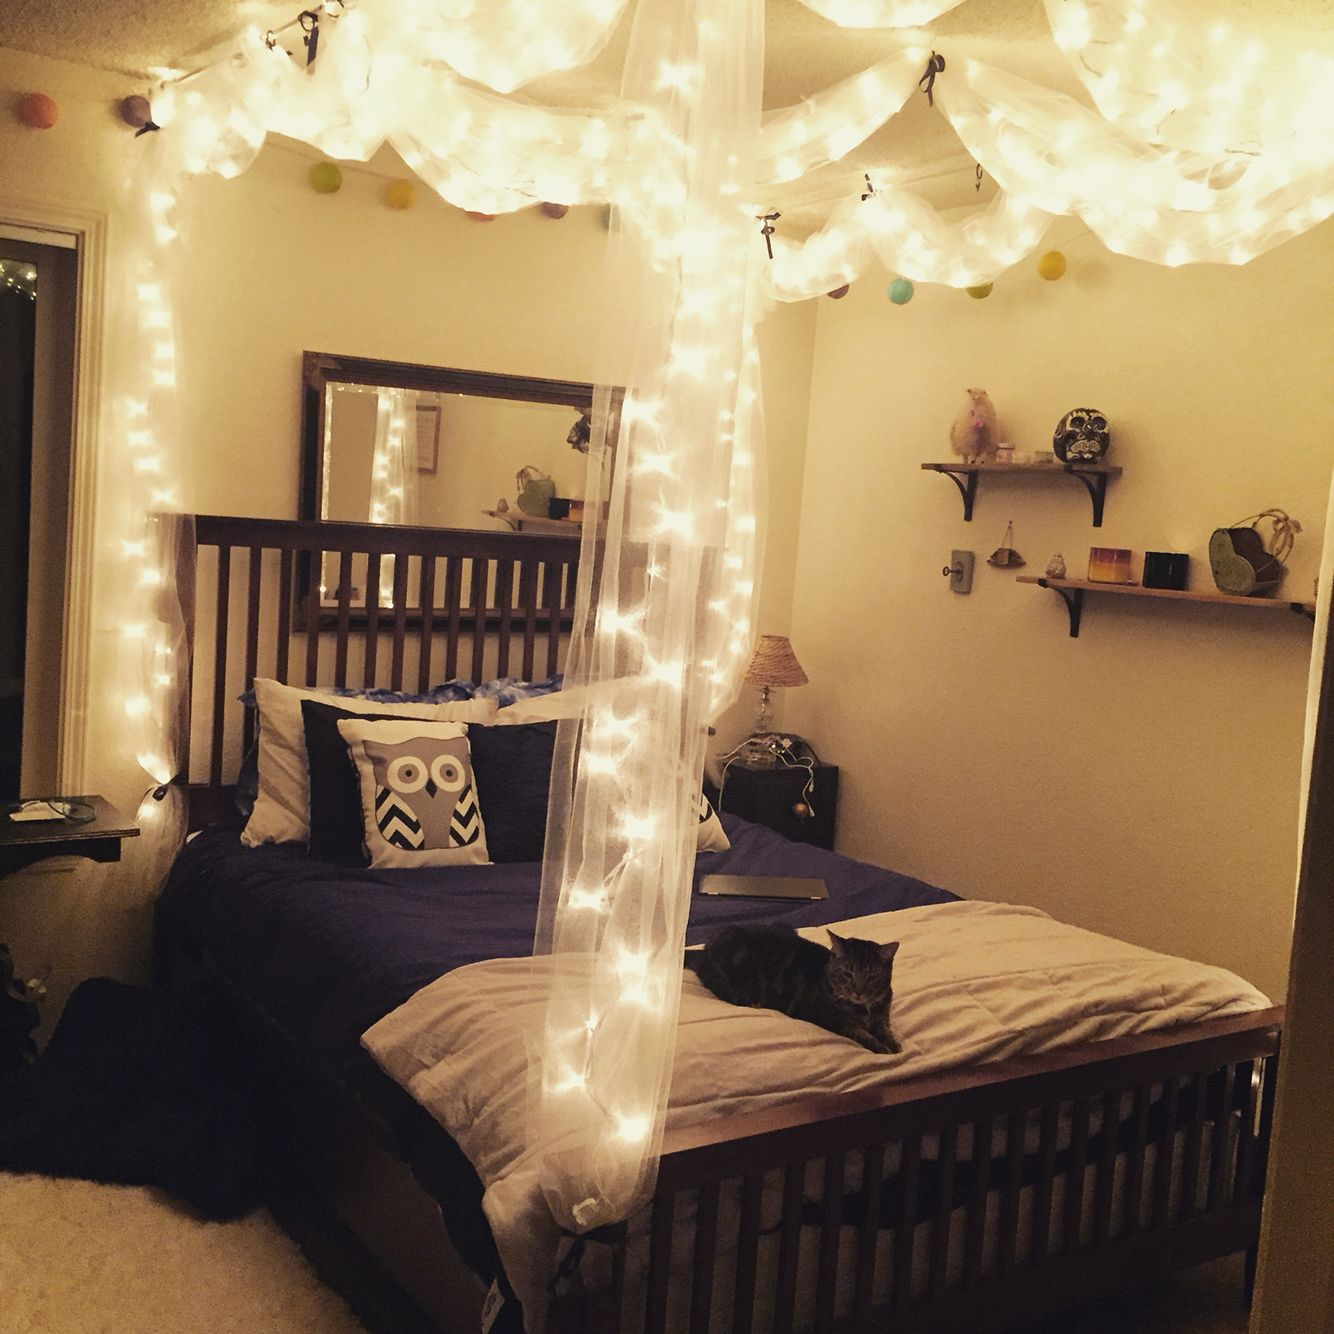 Diy bed canopy with lights diy pinterest canopy - Bedroom decorations diy ...